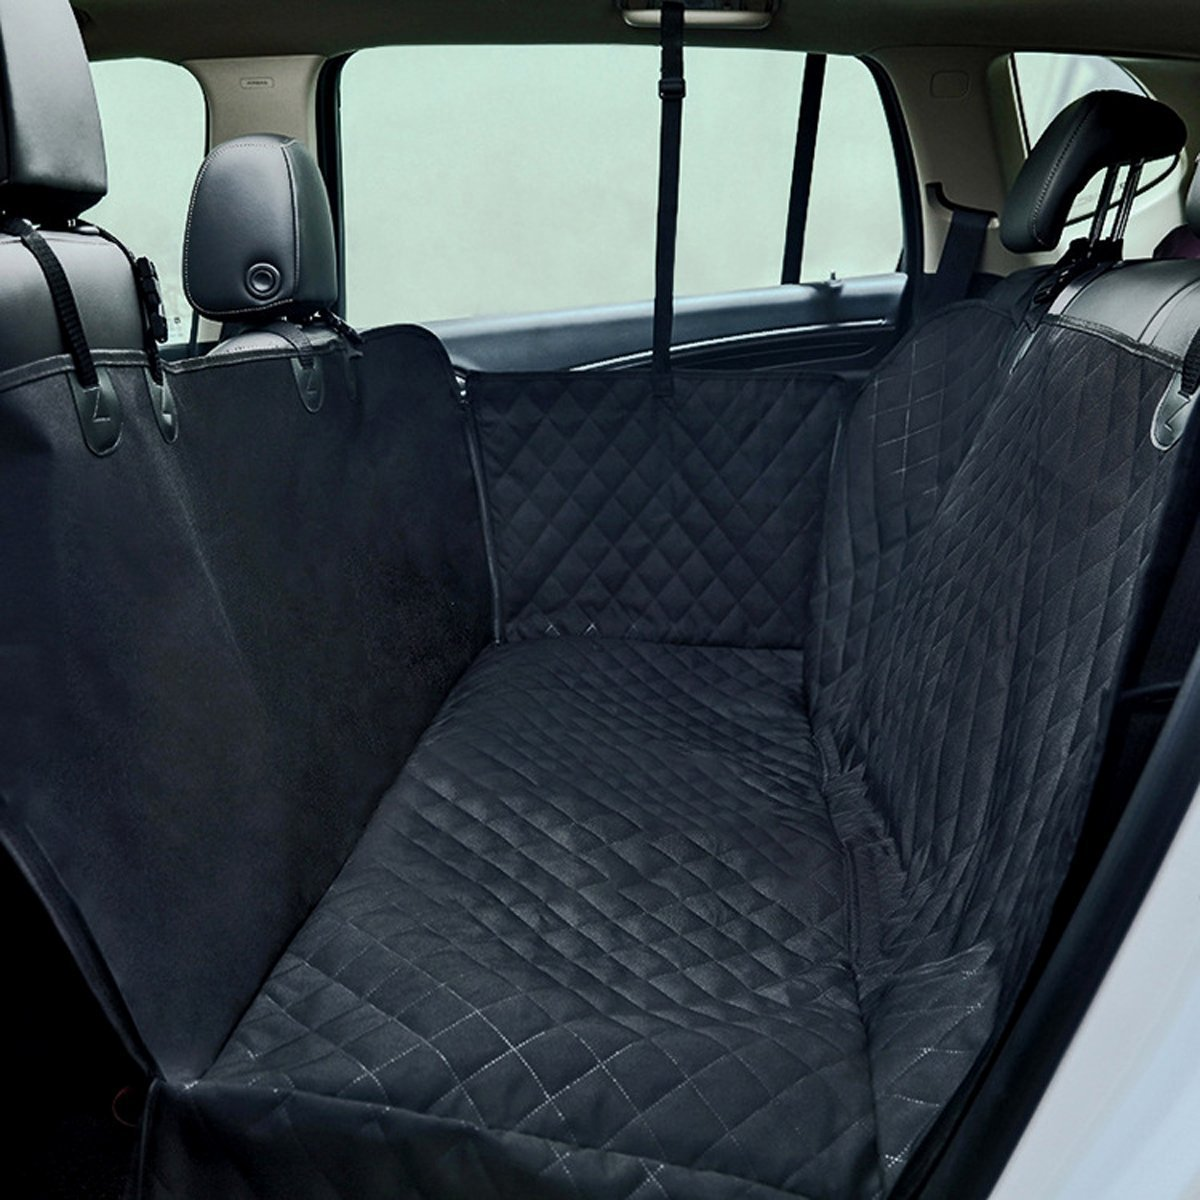 Car Seat Cover Safety Pet Waterproof Hammock Blanket Cover Mat Travel Dog Cat Seat Covers Auto Seat Covers Safety Travel Pet Pad atlanticbeach solid sexy women one piece swimsuit swimwear high waist monokini push up bathing suit maillot de bain bodysuit